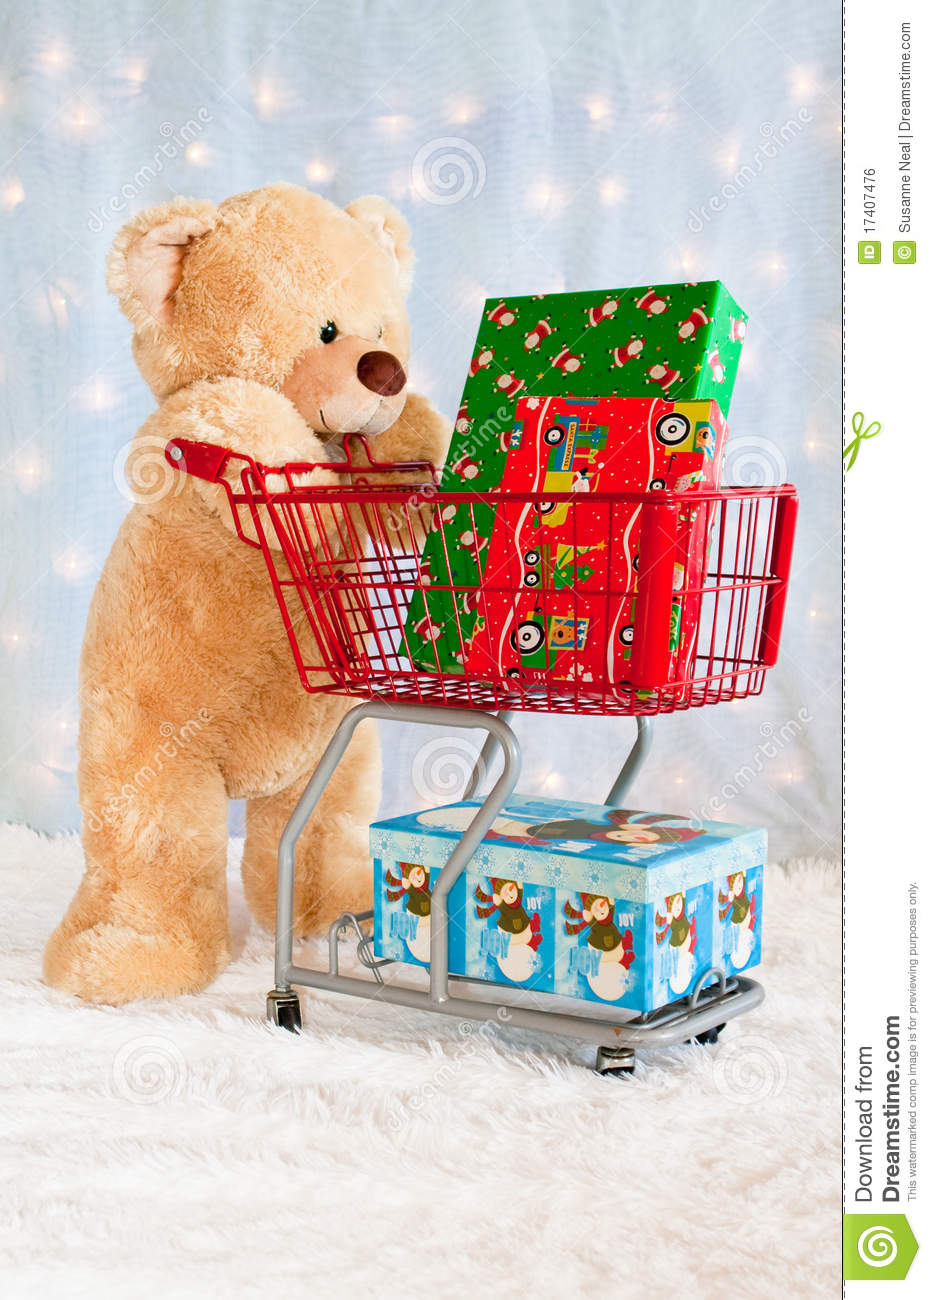 Large teddy bear online shopping